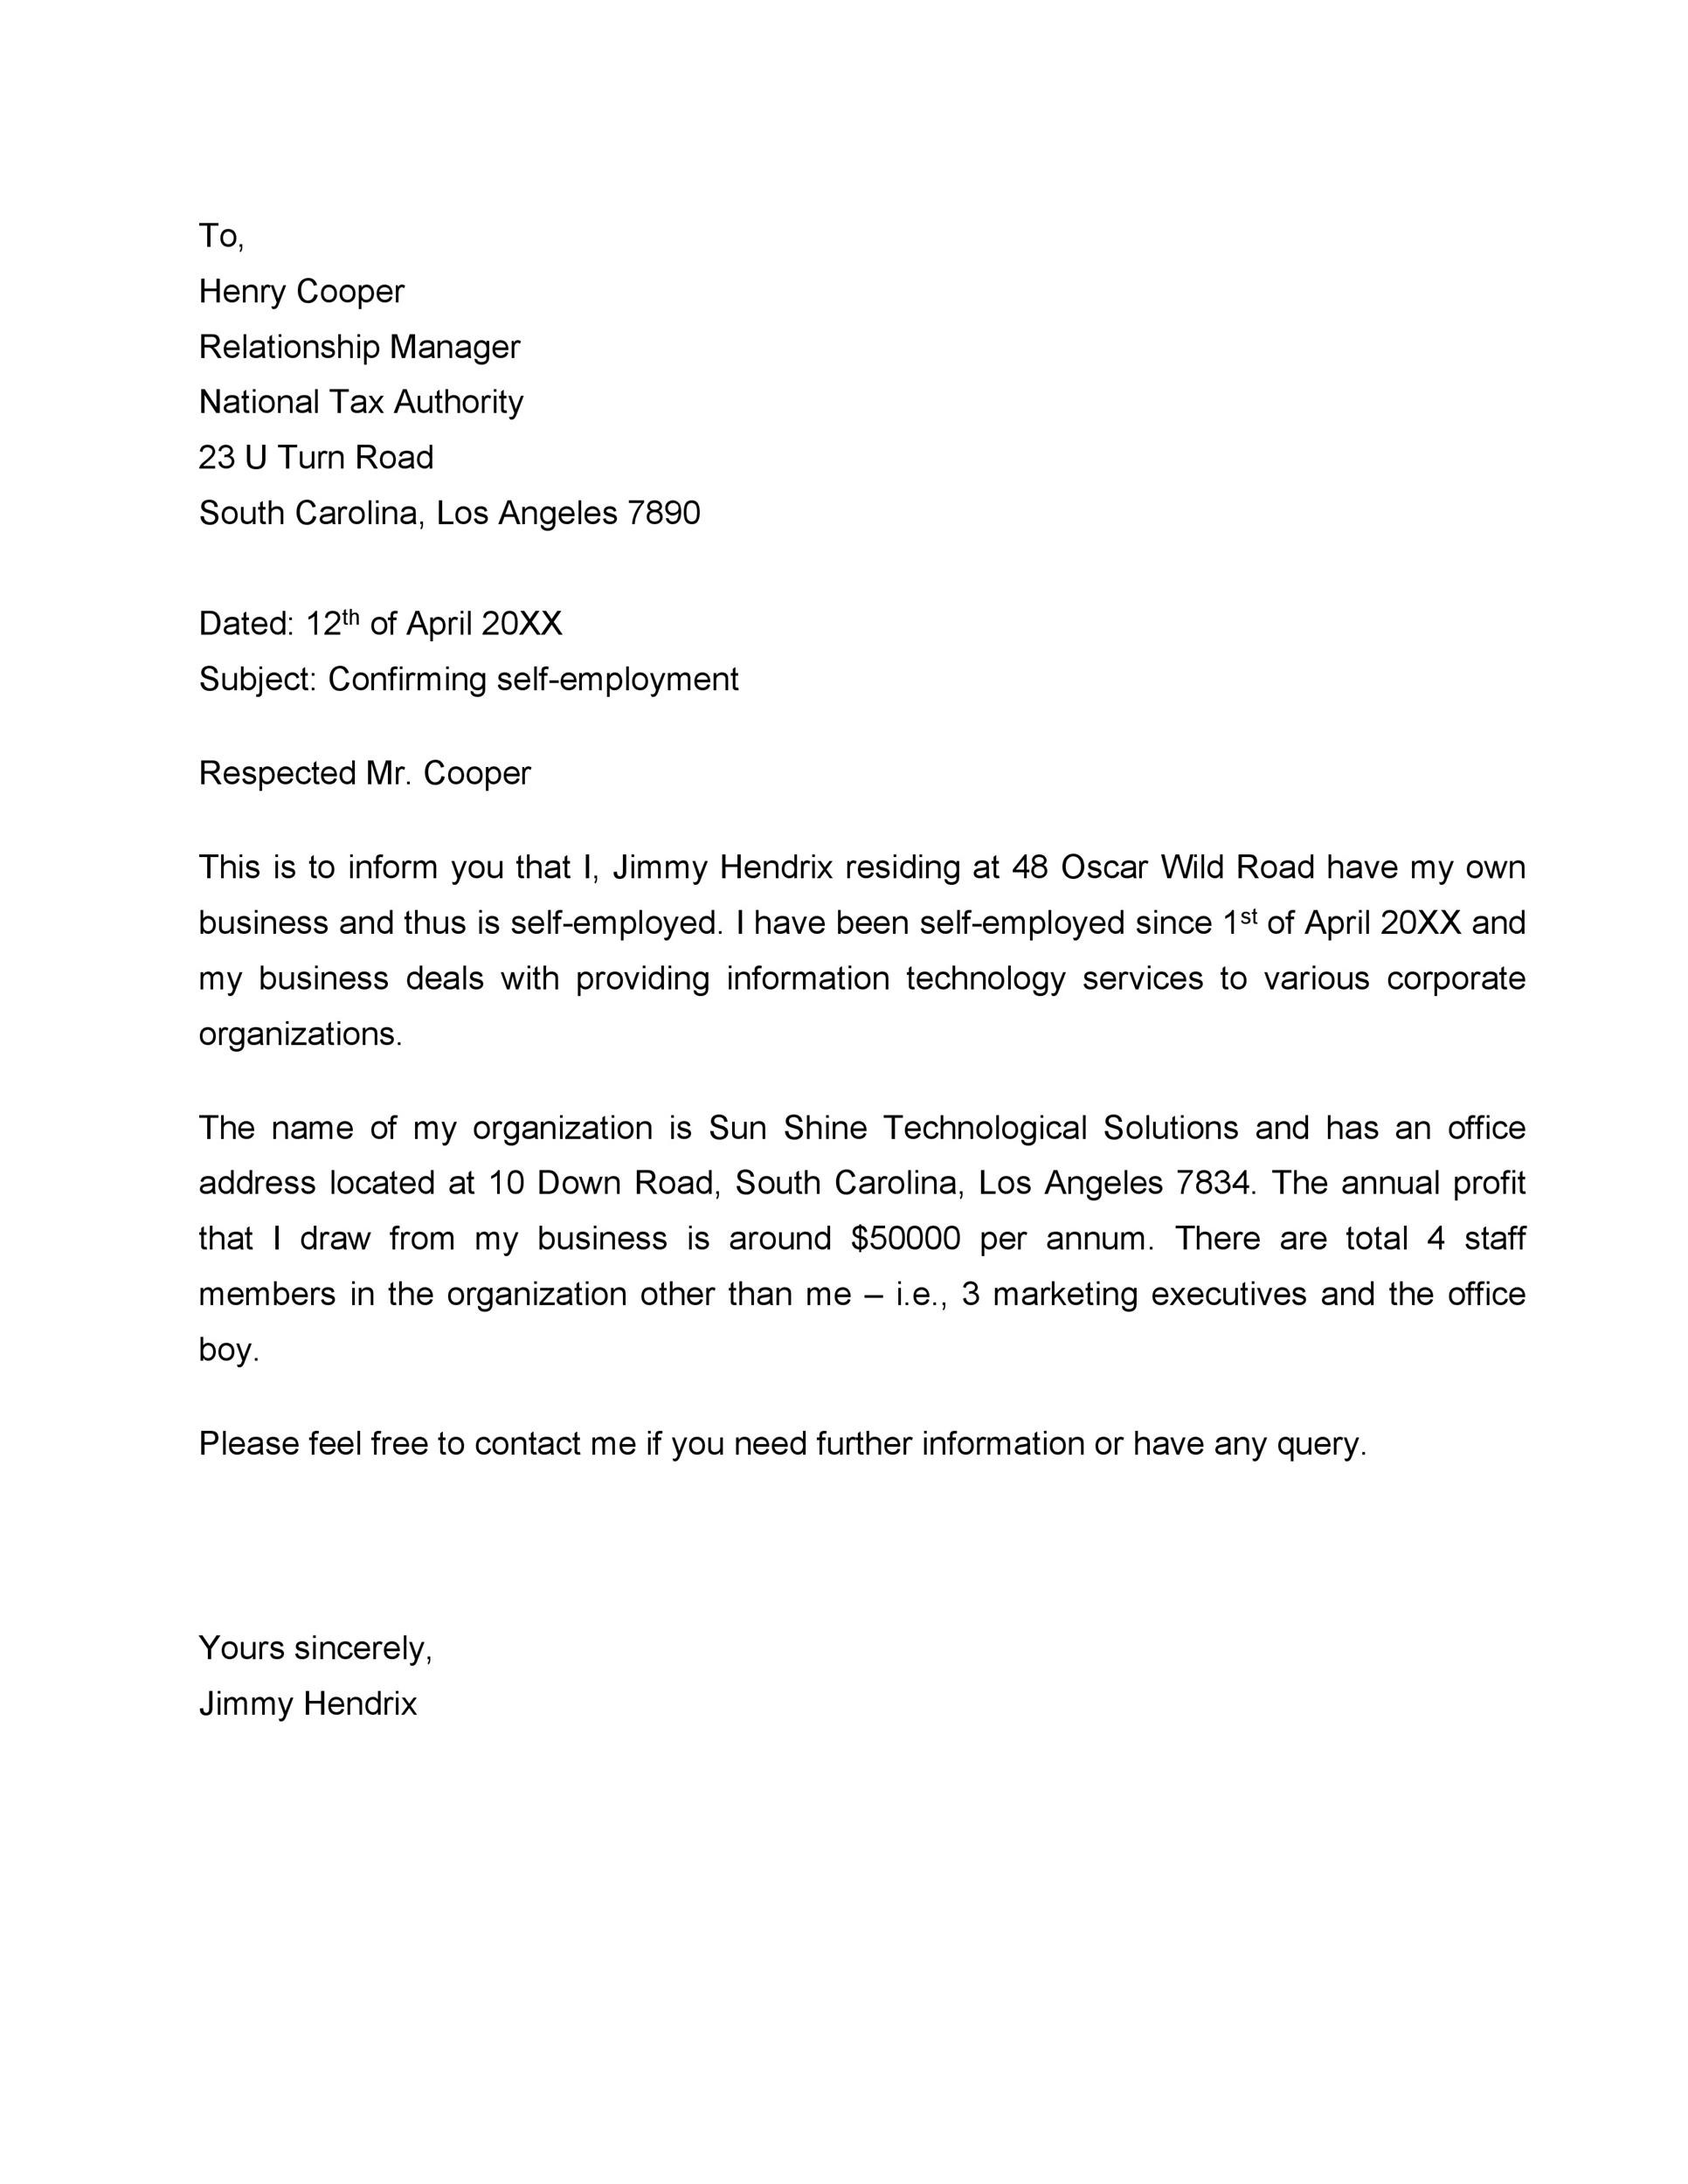 microsoft word formal letter template